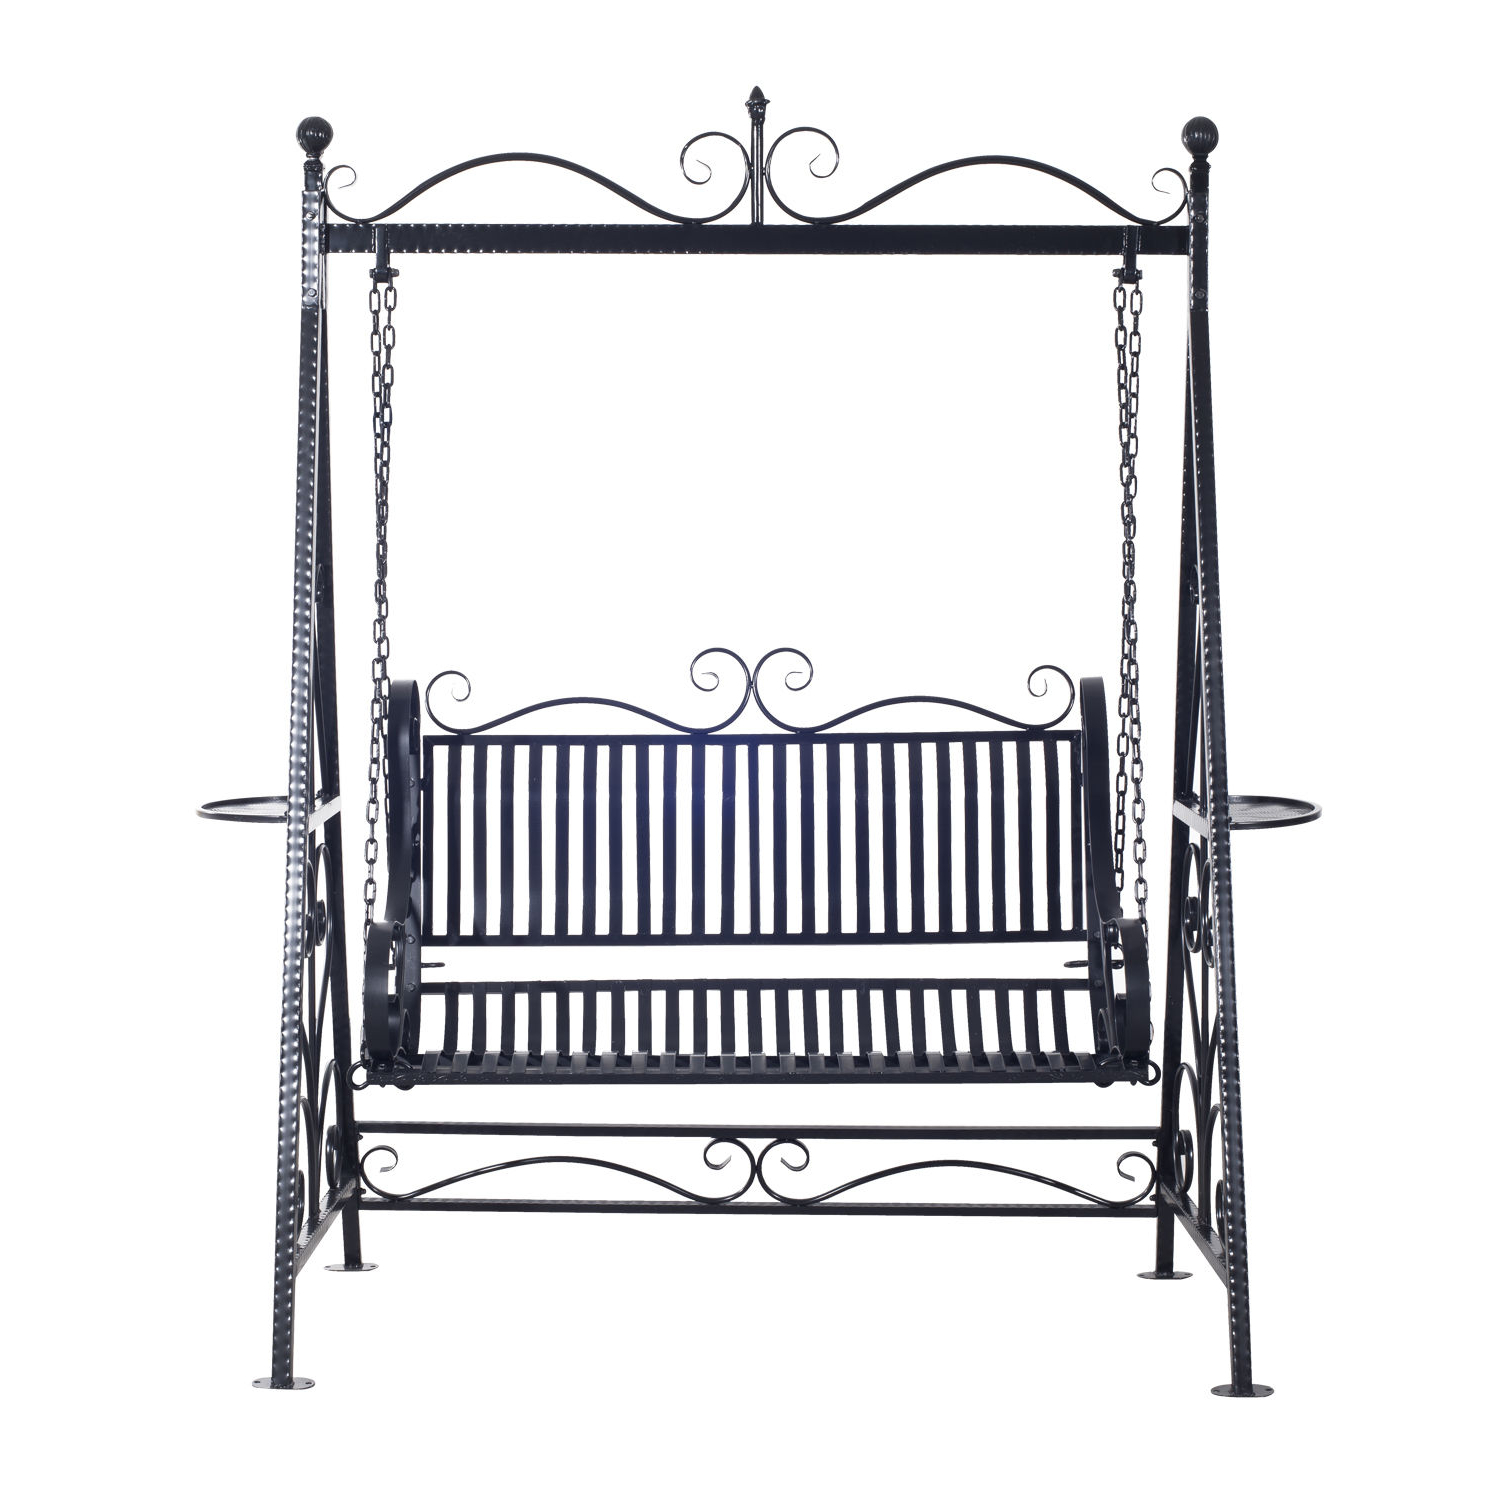 2 Person Antique Black Iron Outdoor Swings Intended For Most Recently Released Outsunny Cast Iron Swing Chair (View 22 of 30)